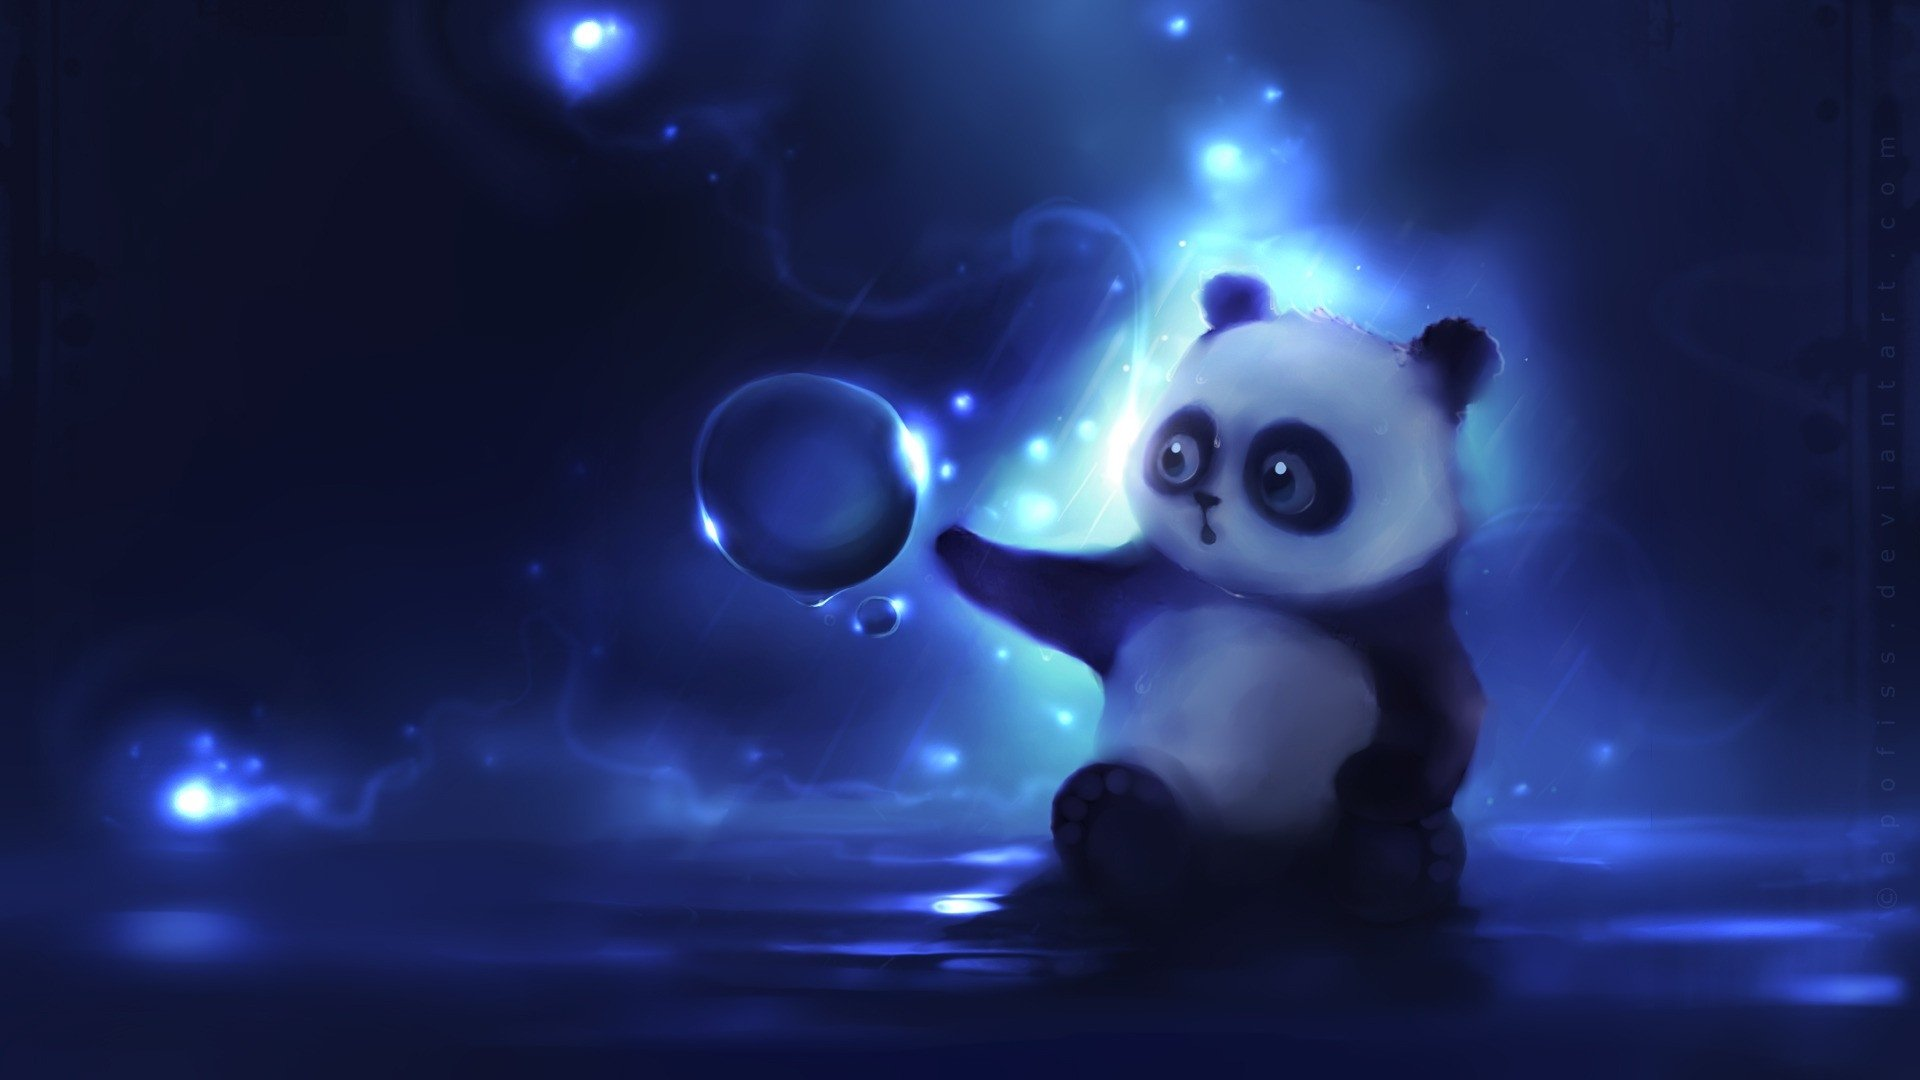 Blue Panda Wallpaper